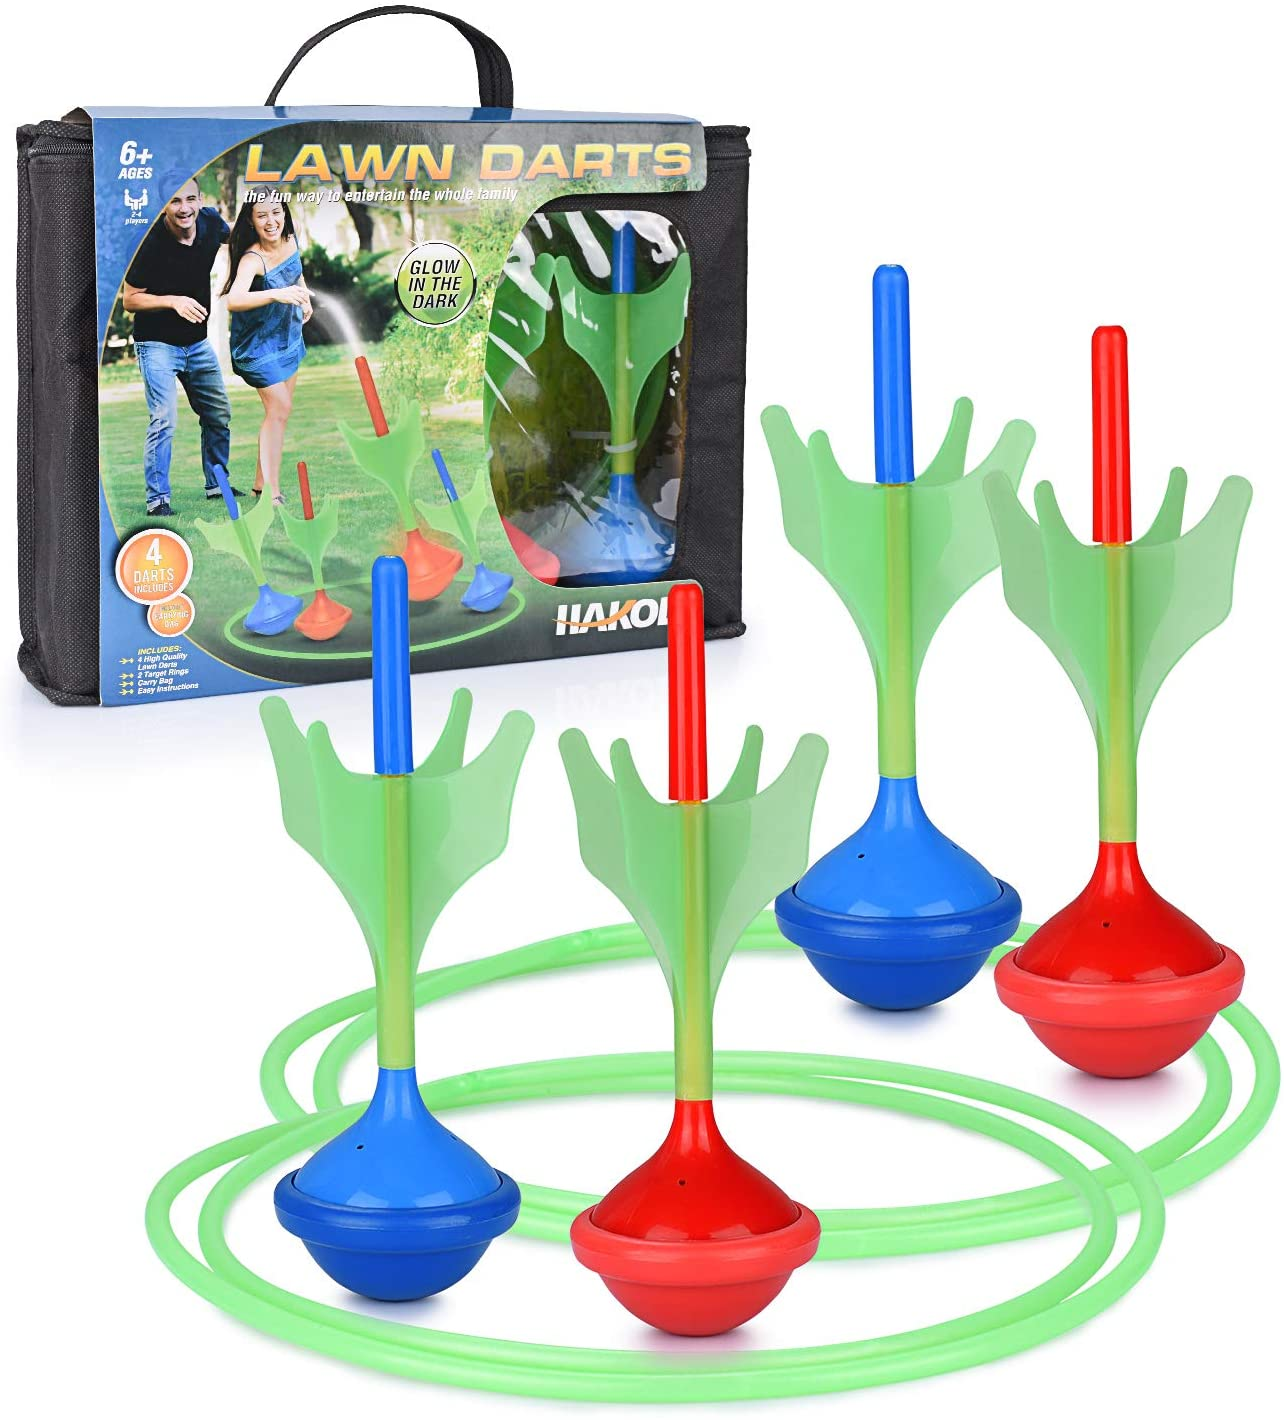 Review of Lawn Darts Game - Glow in The Dark, Outdoor Backyard Toy for Kids & Adults